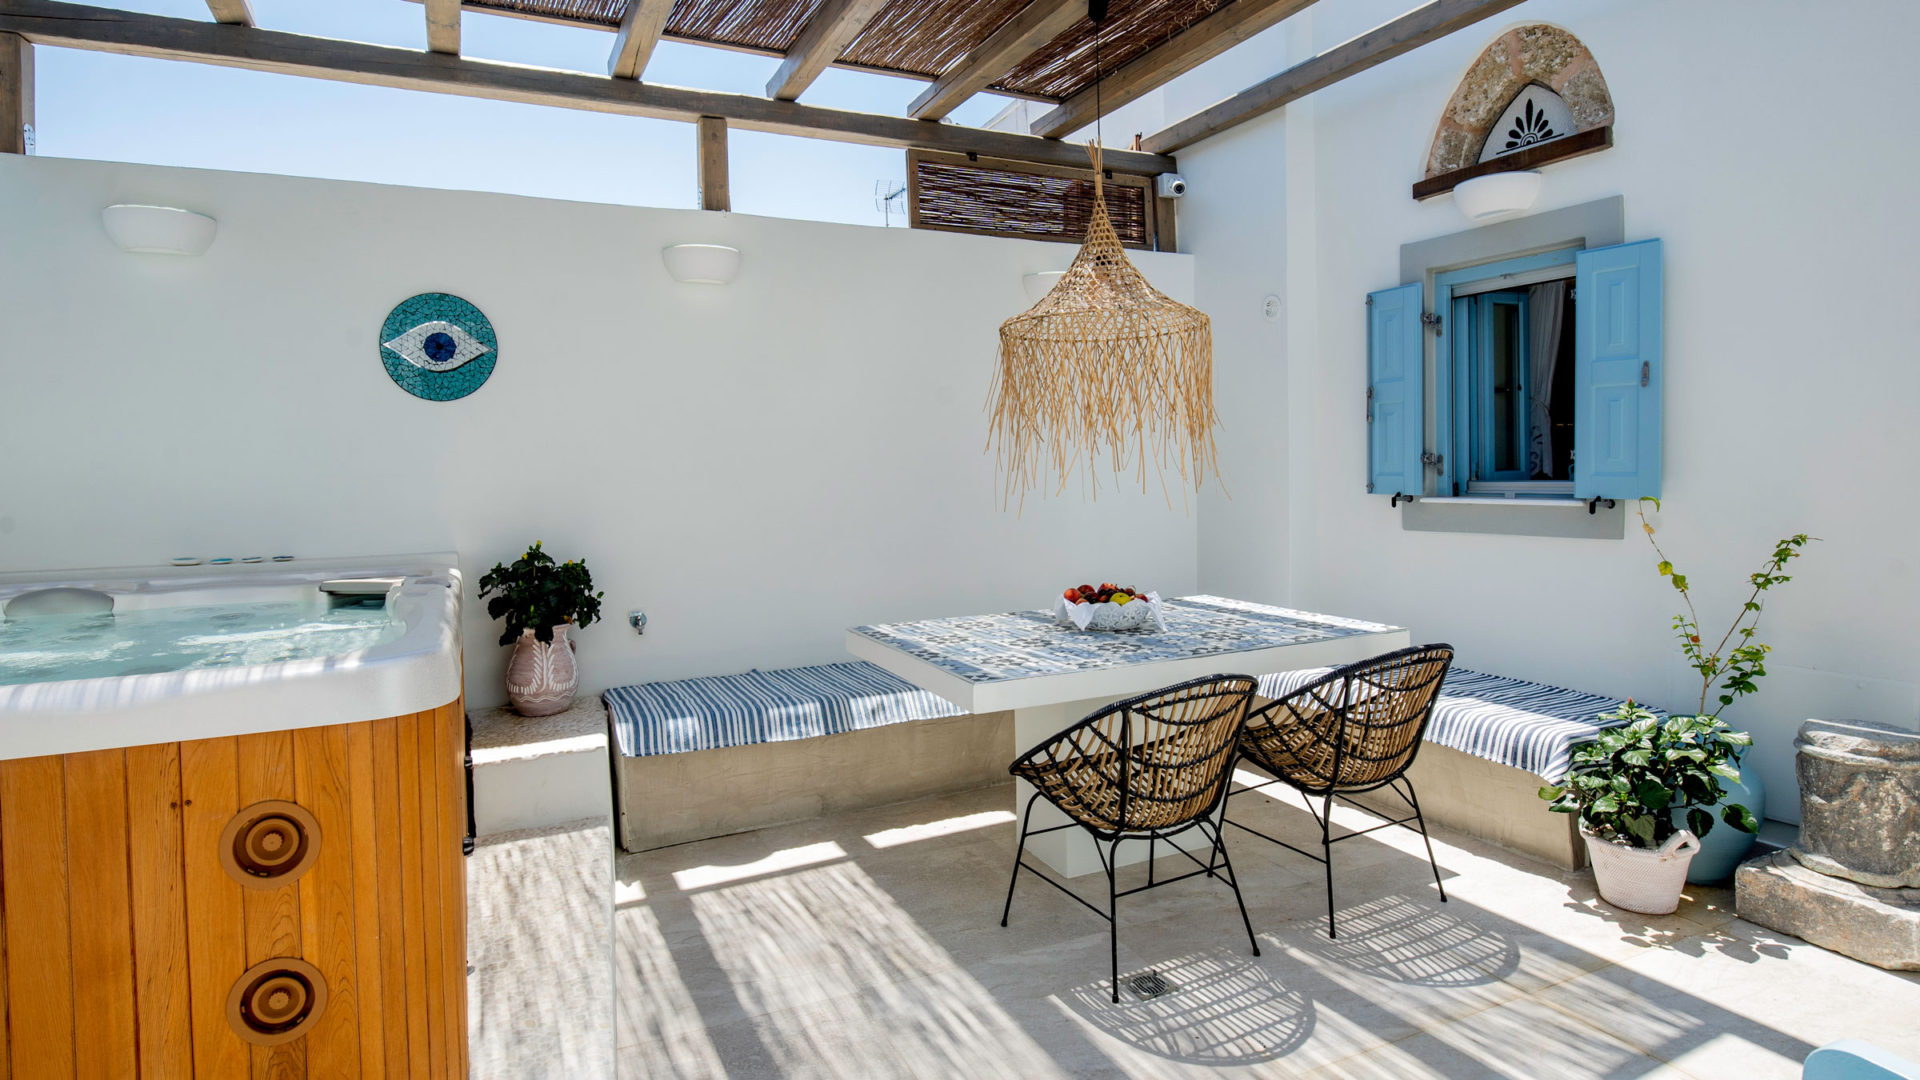 Private yard with dining table and hot tub